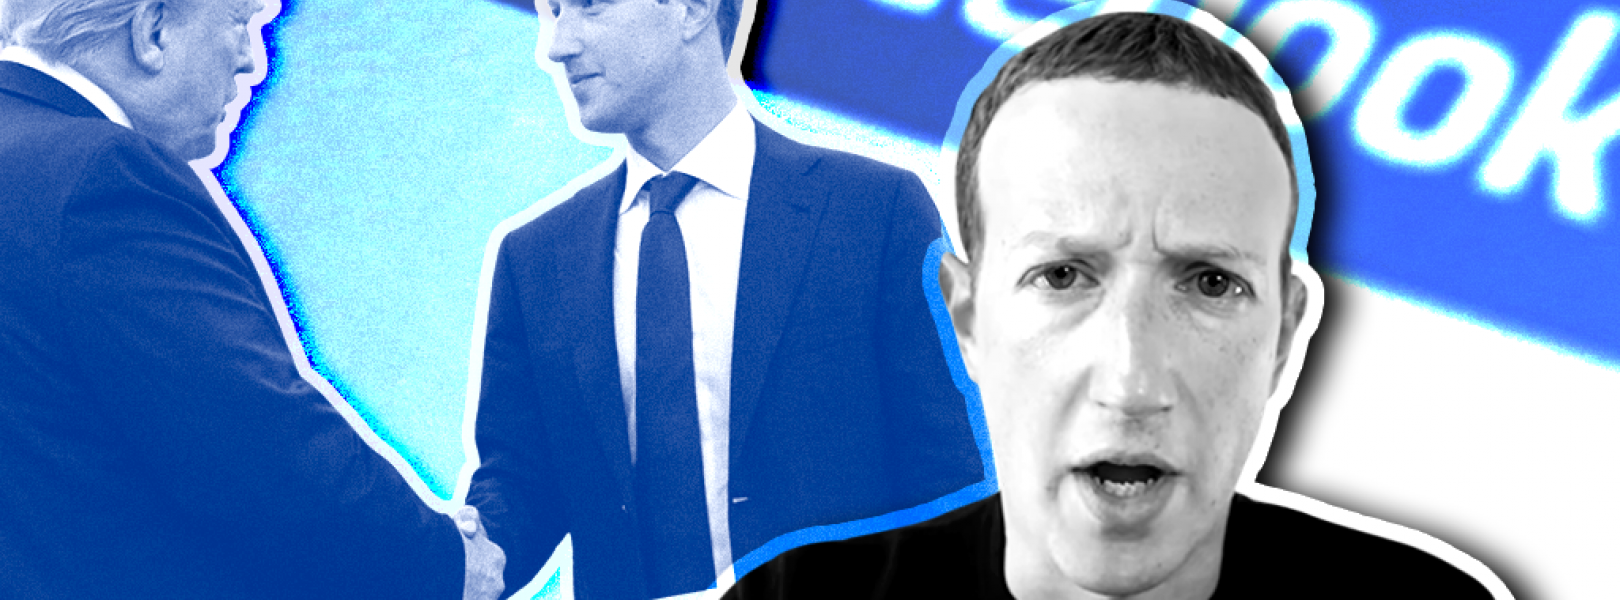 Mark Zuckerberg and Donald Trump on a blue background